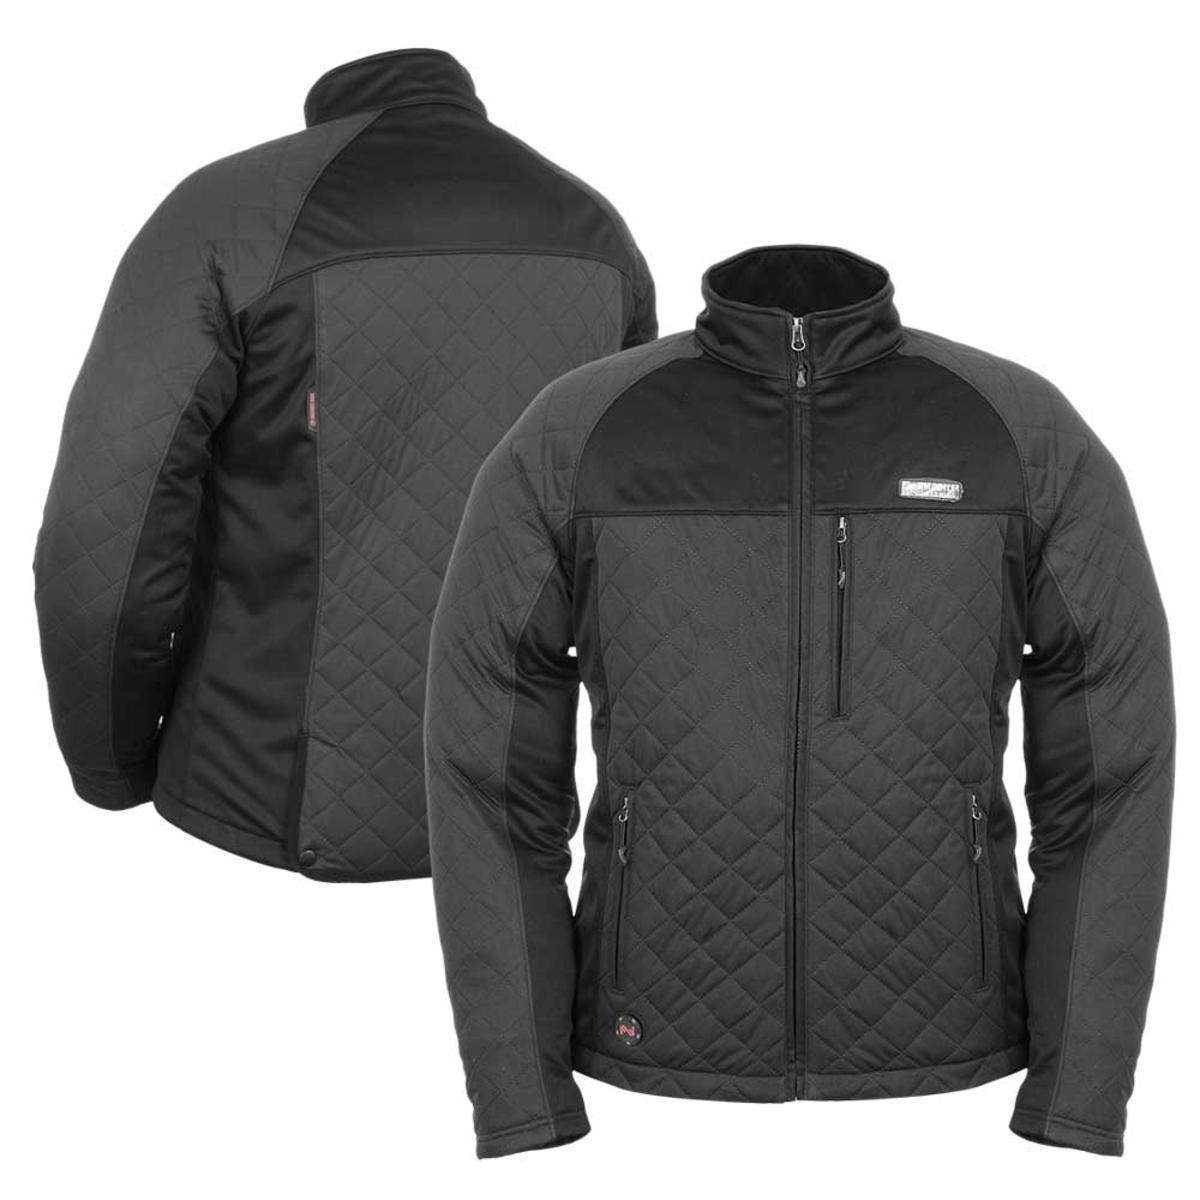 9e52f4894b9 Mobile Warming 7.4V Men s Apex Heated Jacket - The Warming Store